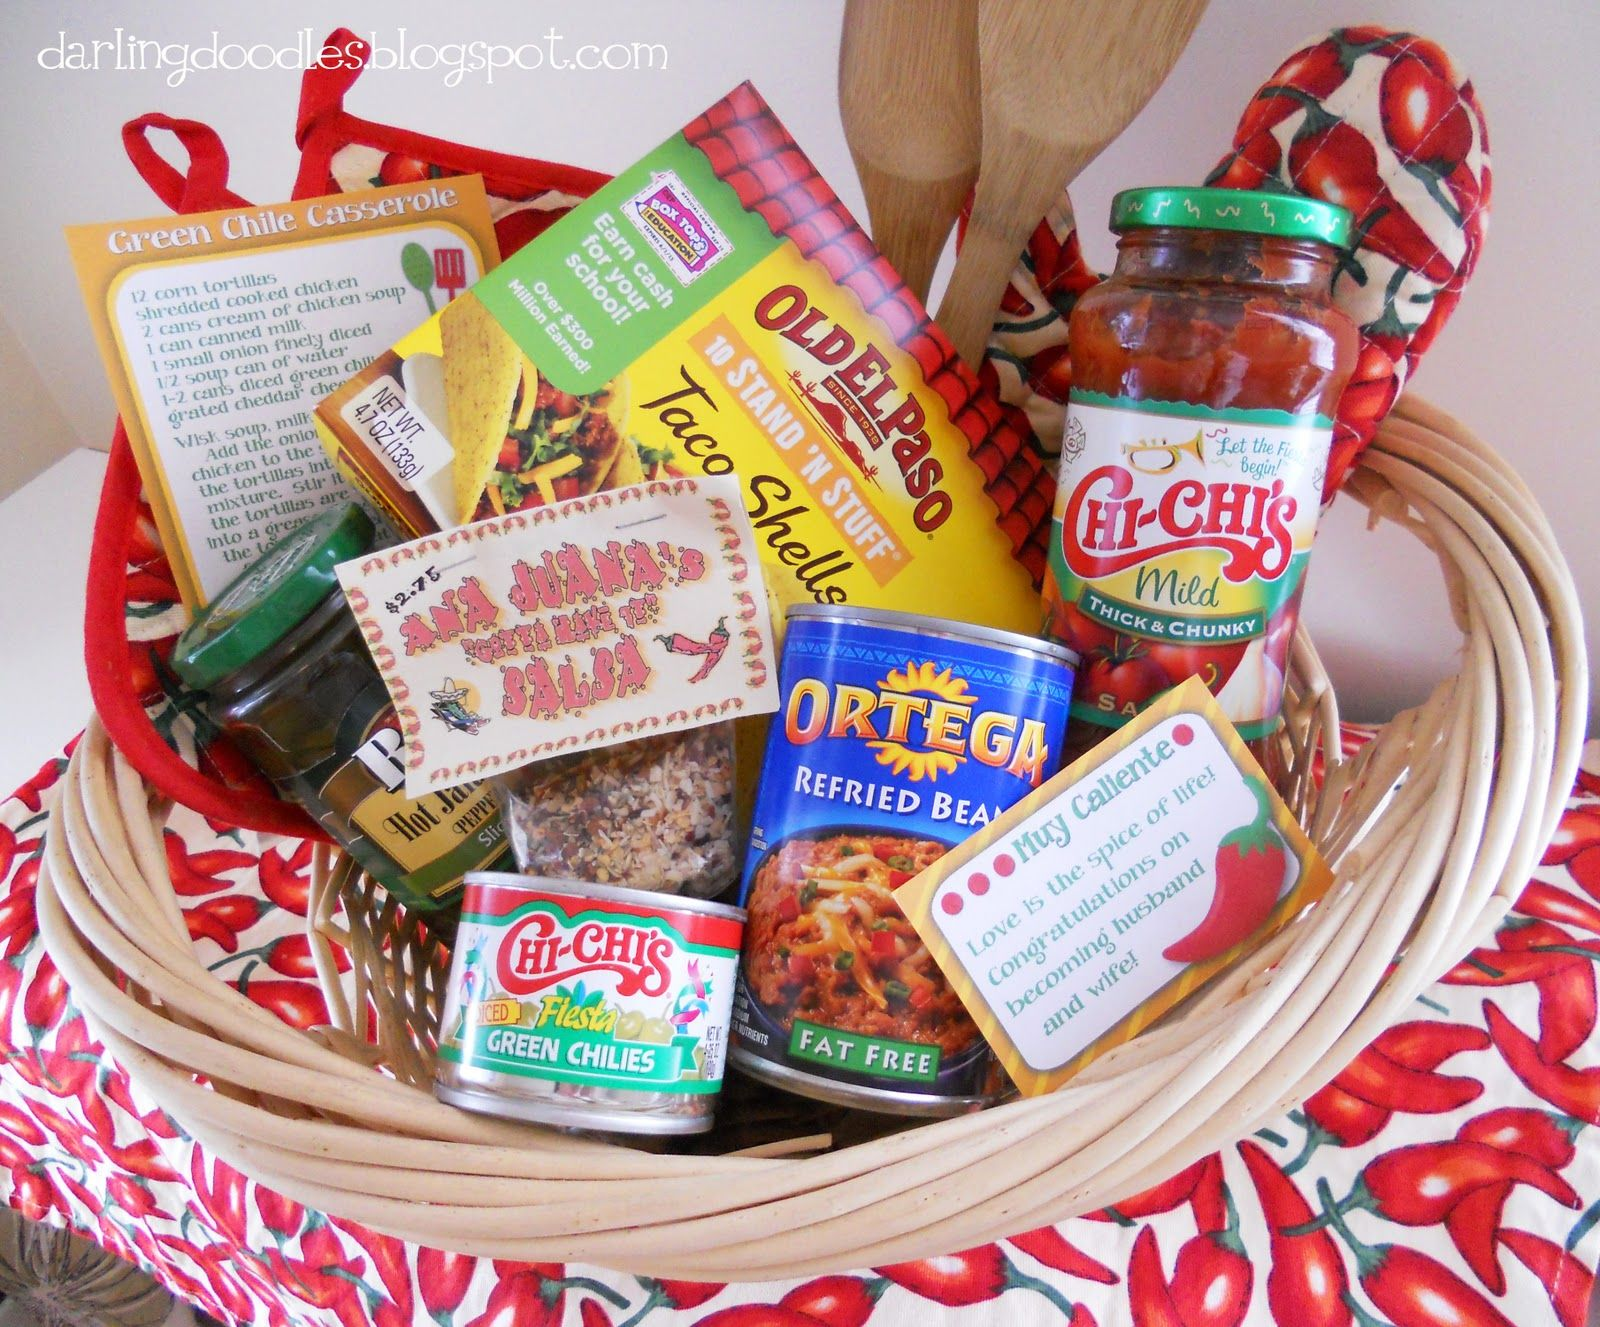 First meal gift baskets pinterest for Dinner party gift ideas